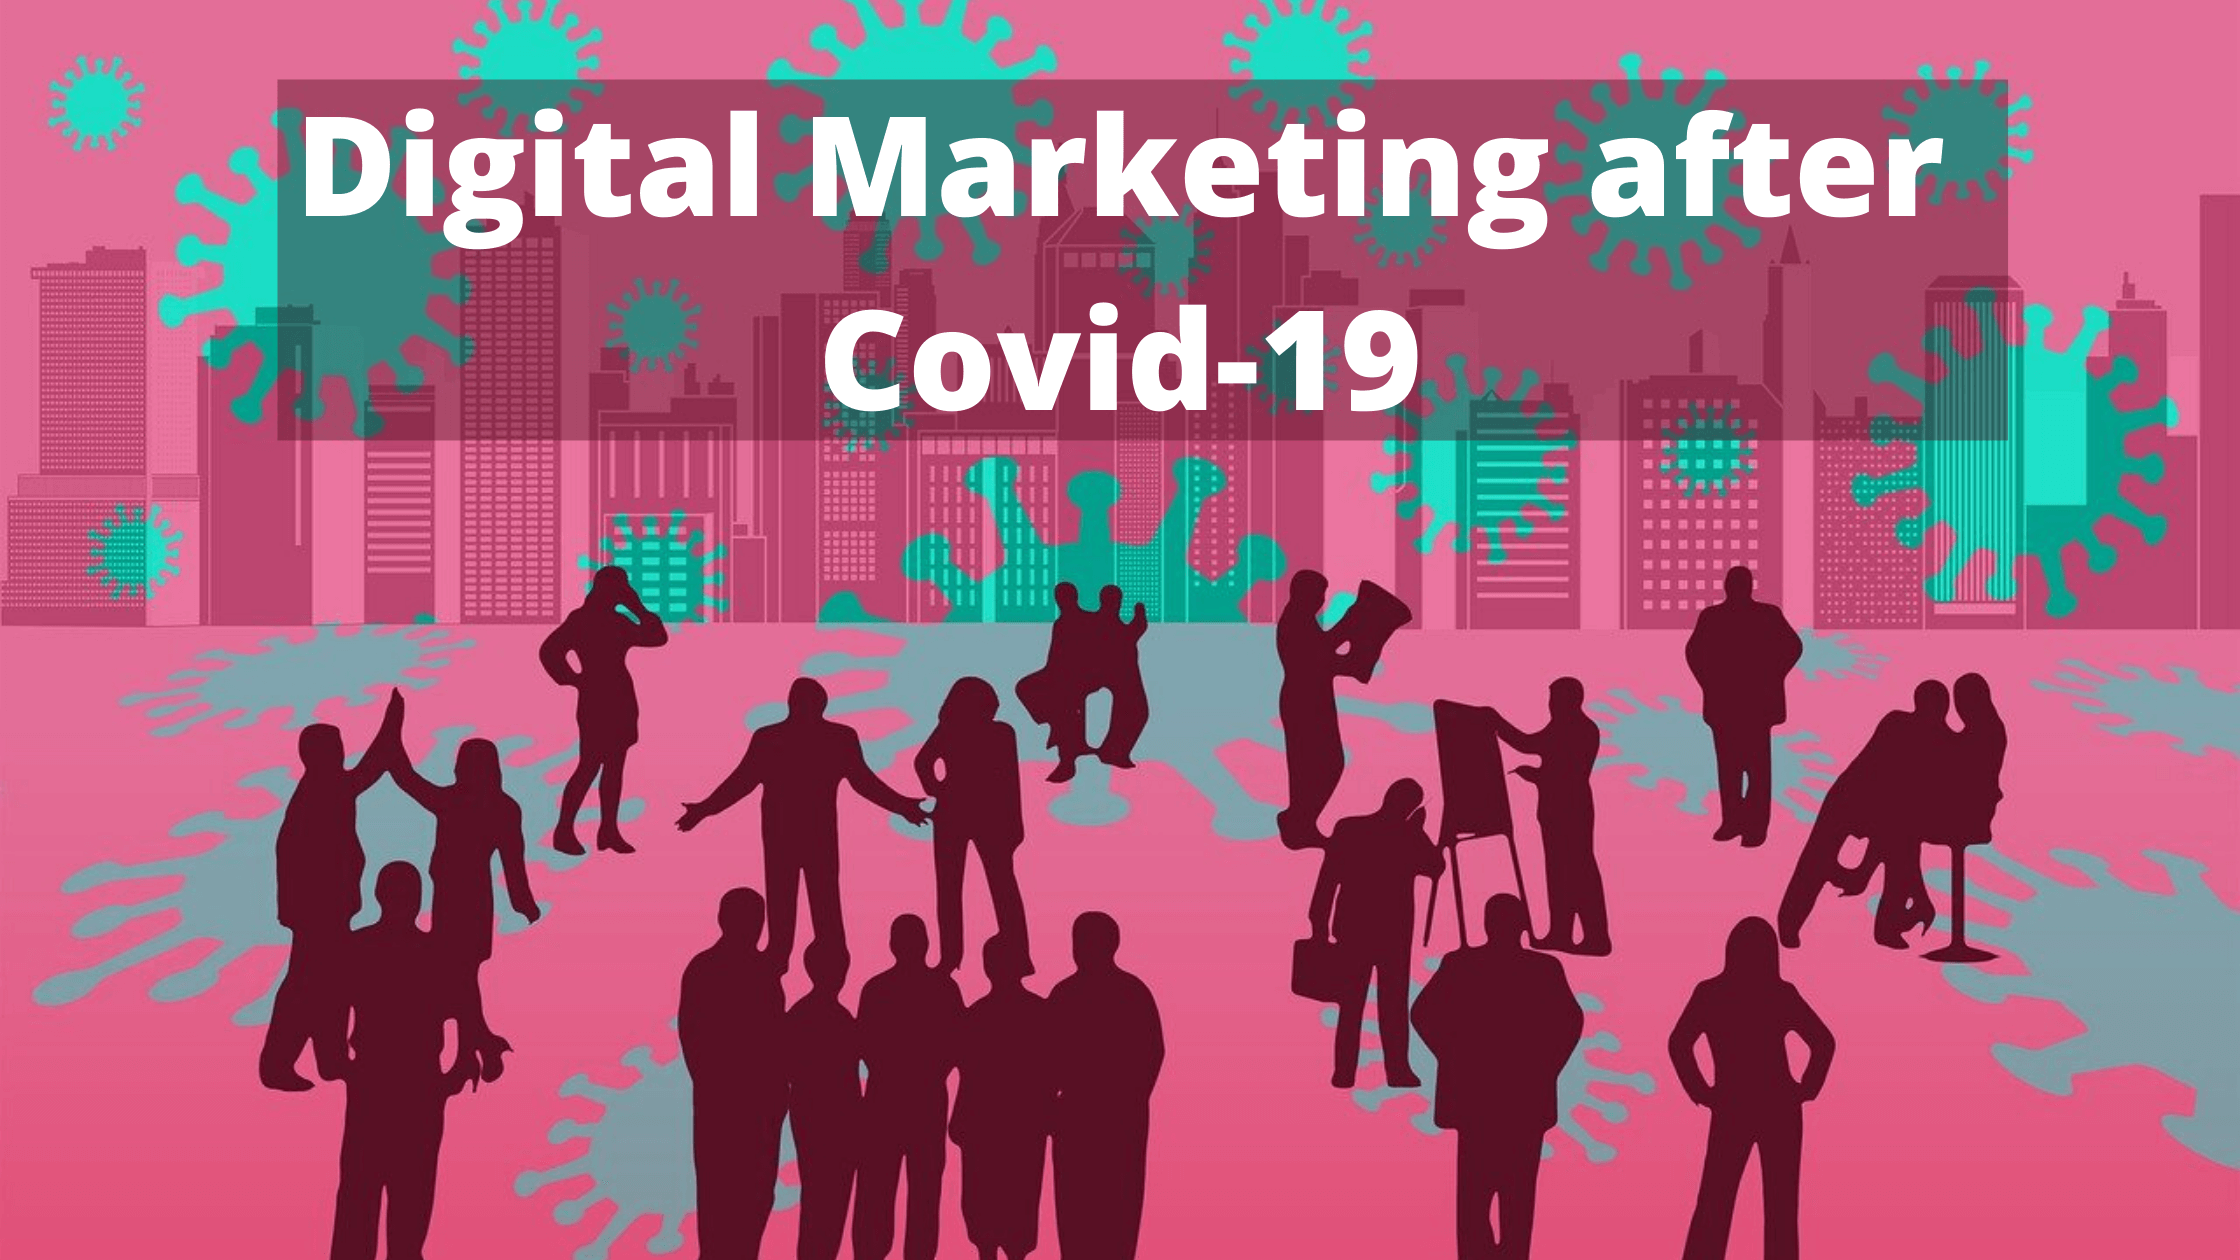 How Digital Marketing will change post Covid-19 (Coronavirus)